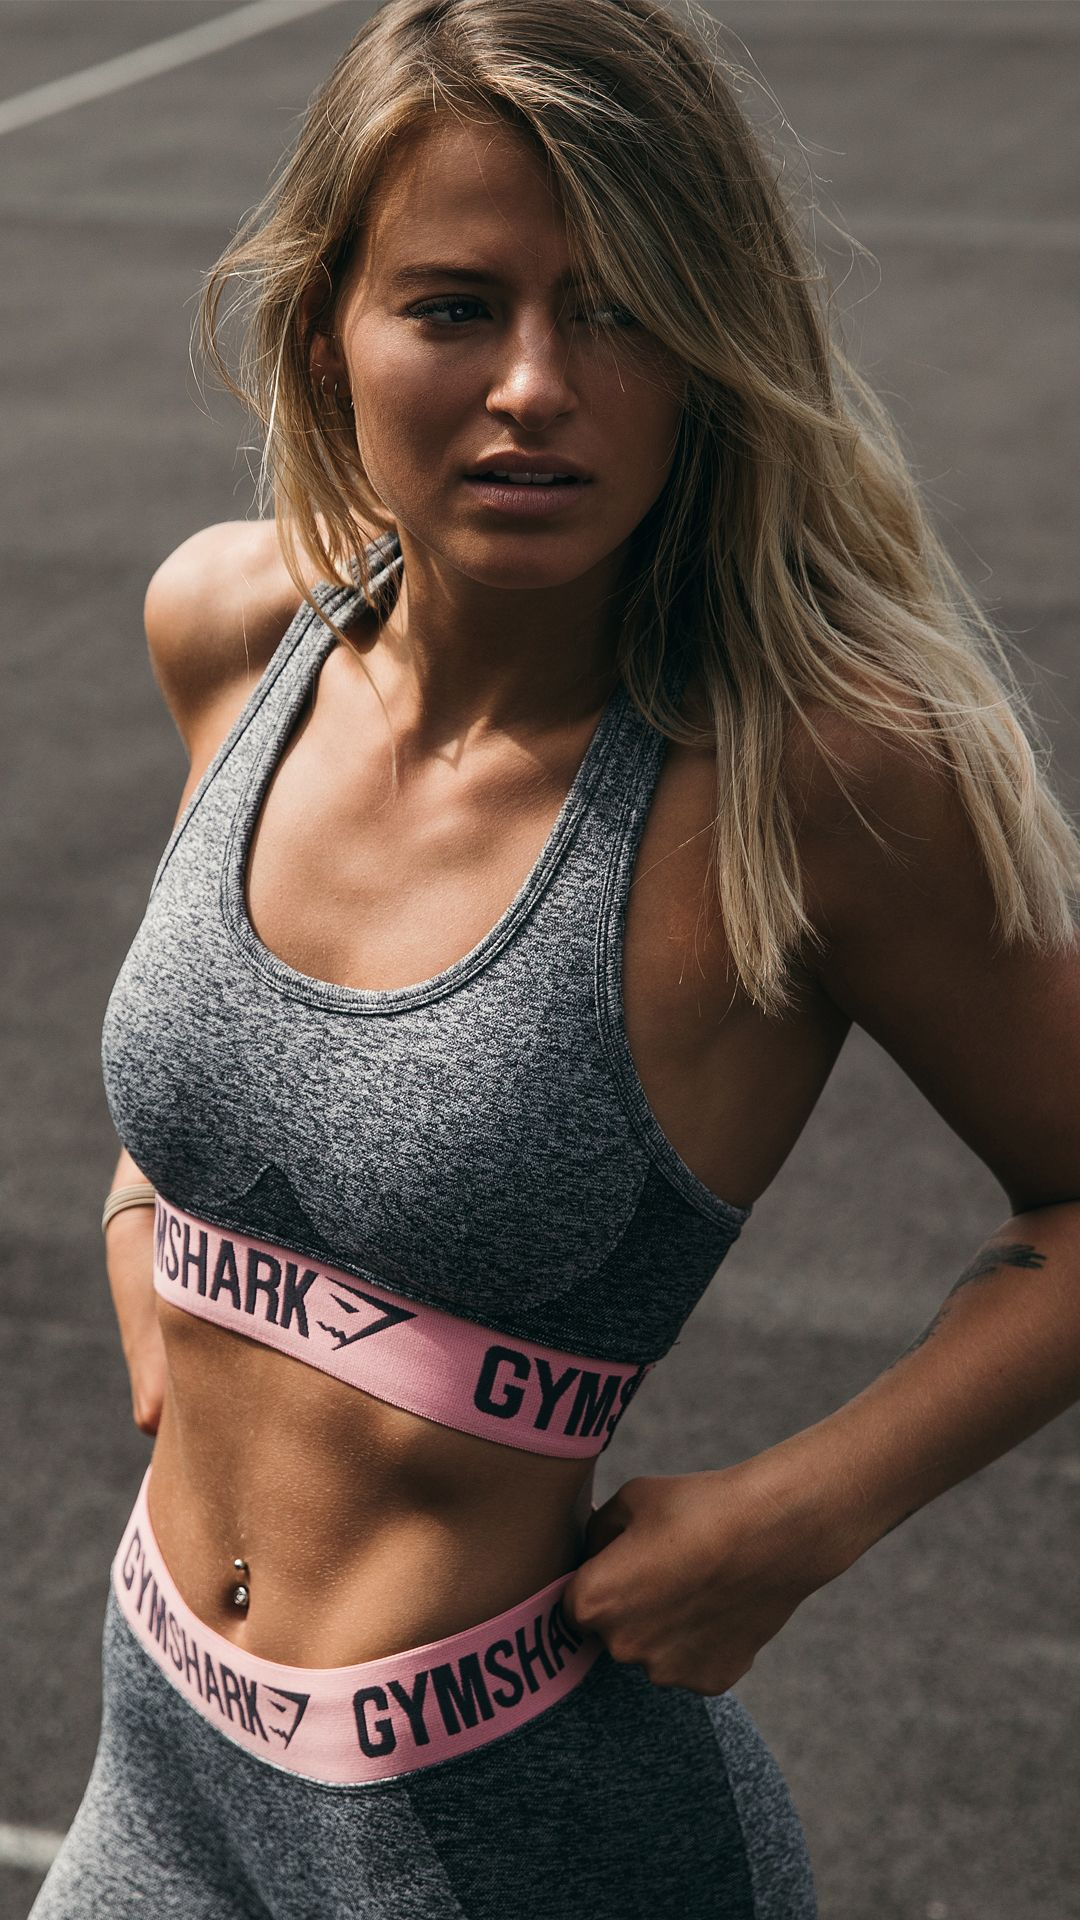 e0c3484bf5071 Meggan Grubb training in the Flex leggings and Flex sports bra in charcoal  marl peach pink.